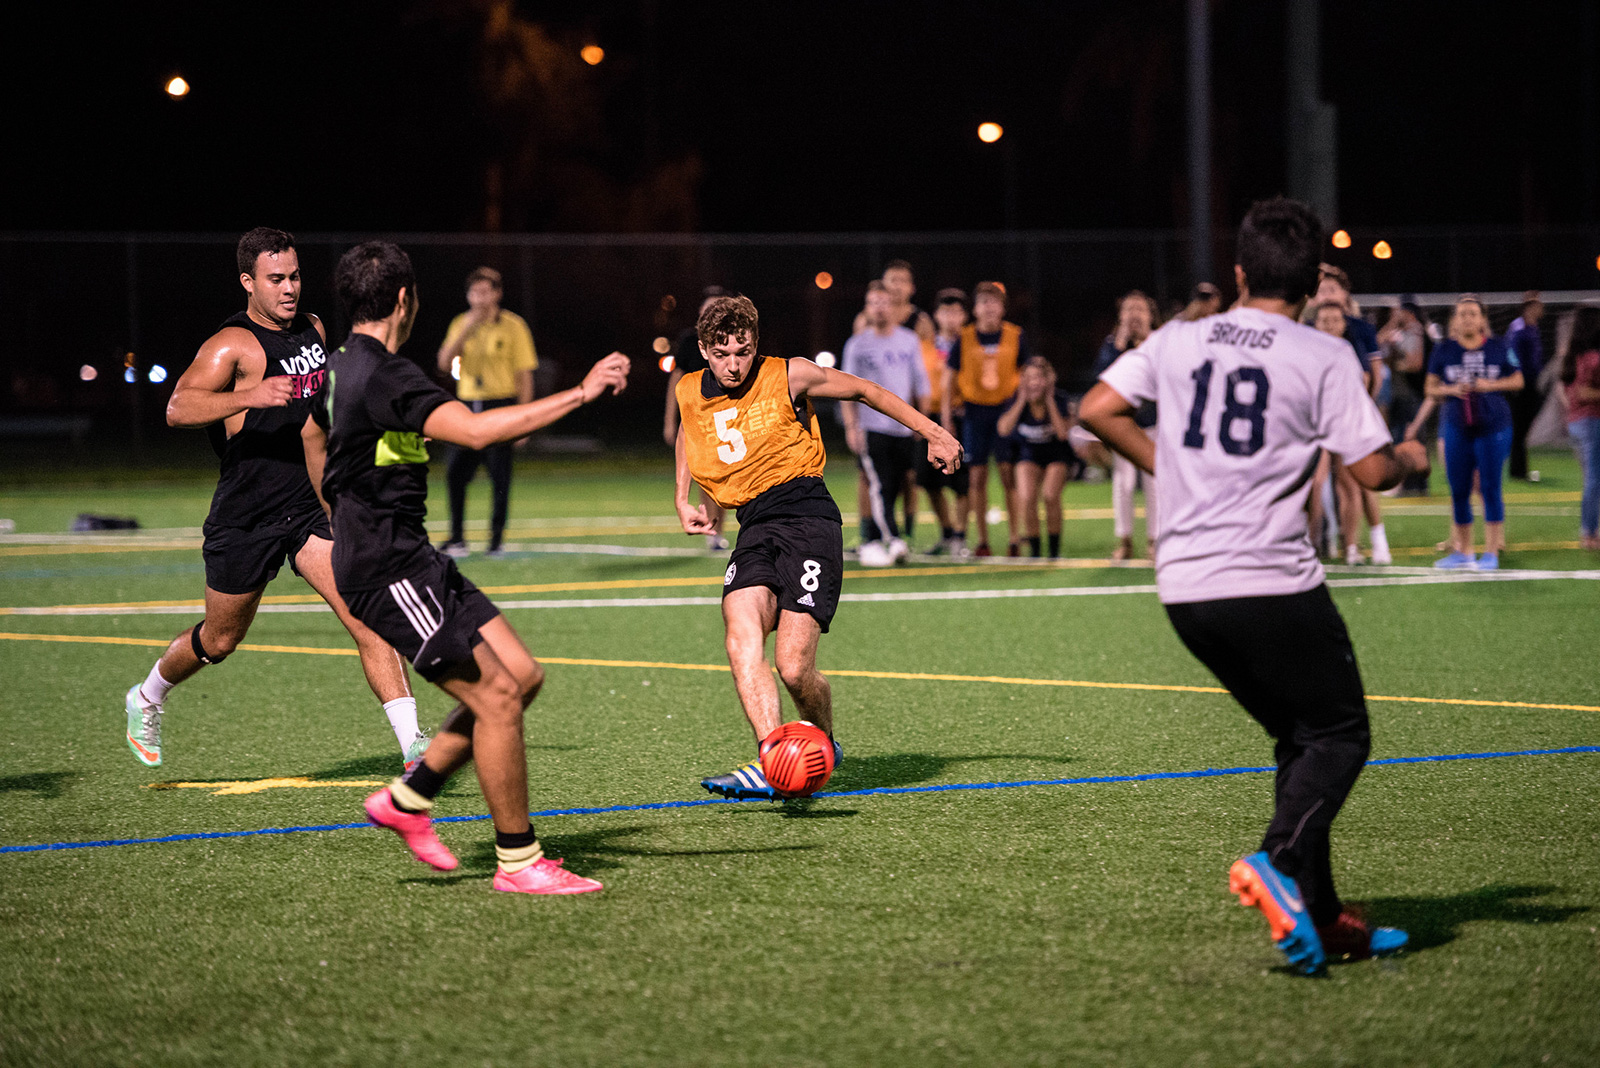 Intramural soccer players relax on a soccer field